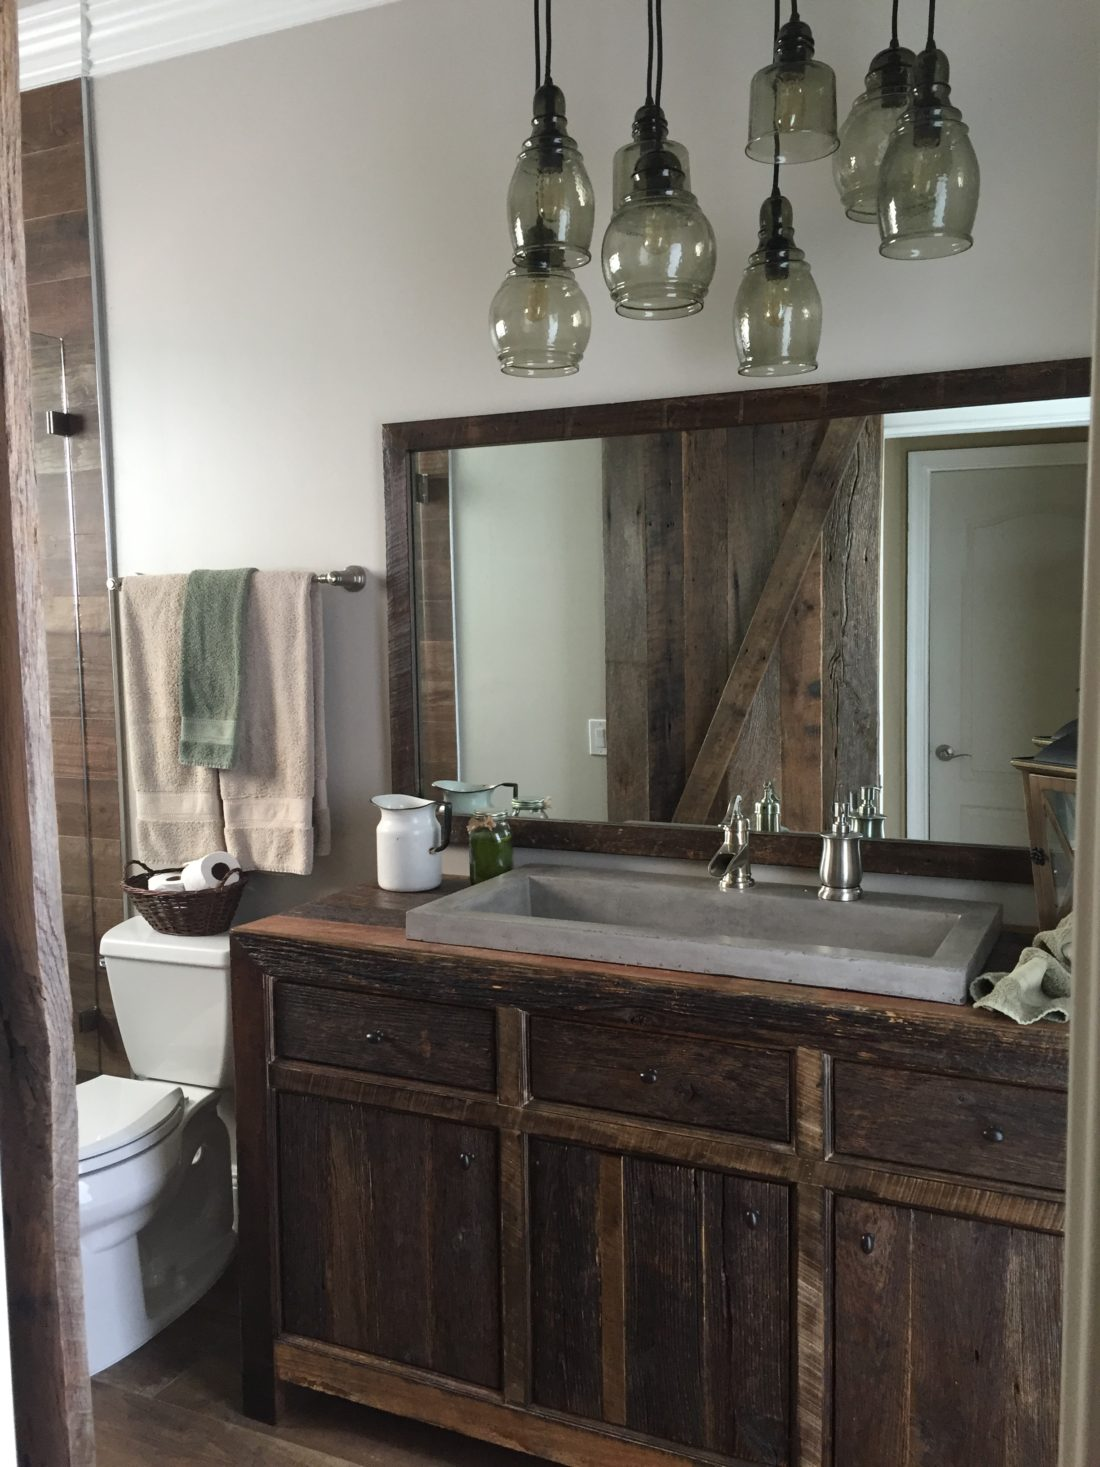 Robbies Rustic Reclaimed Wood Bathroom Vanity Fama Creations - Reclaimed wood bathroom vanity for sale